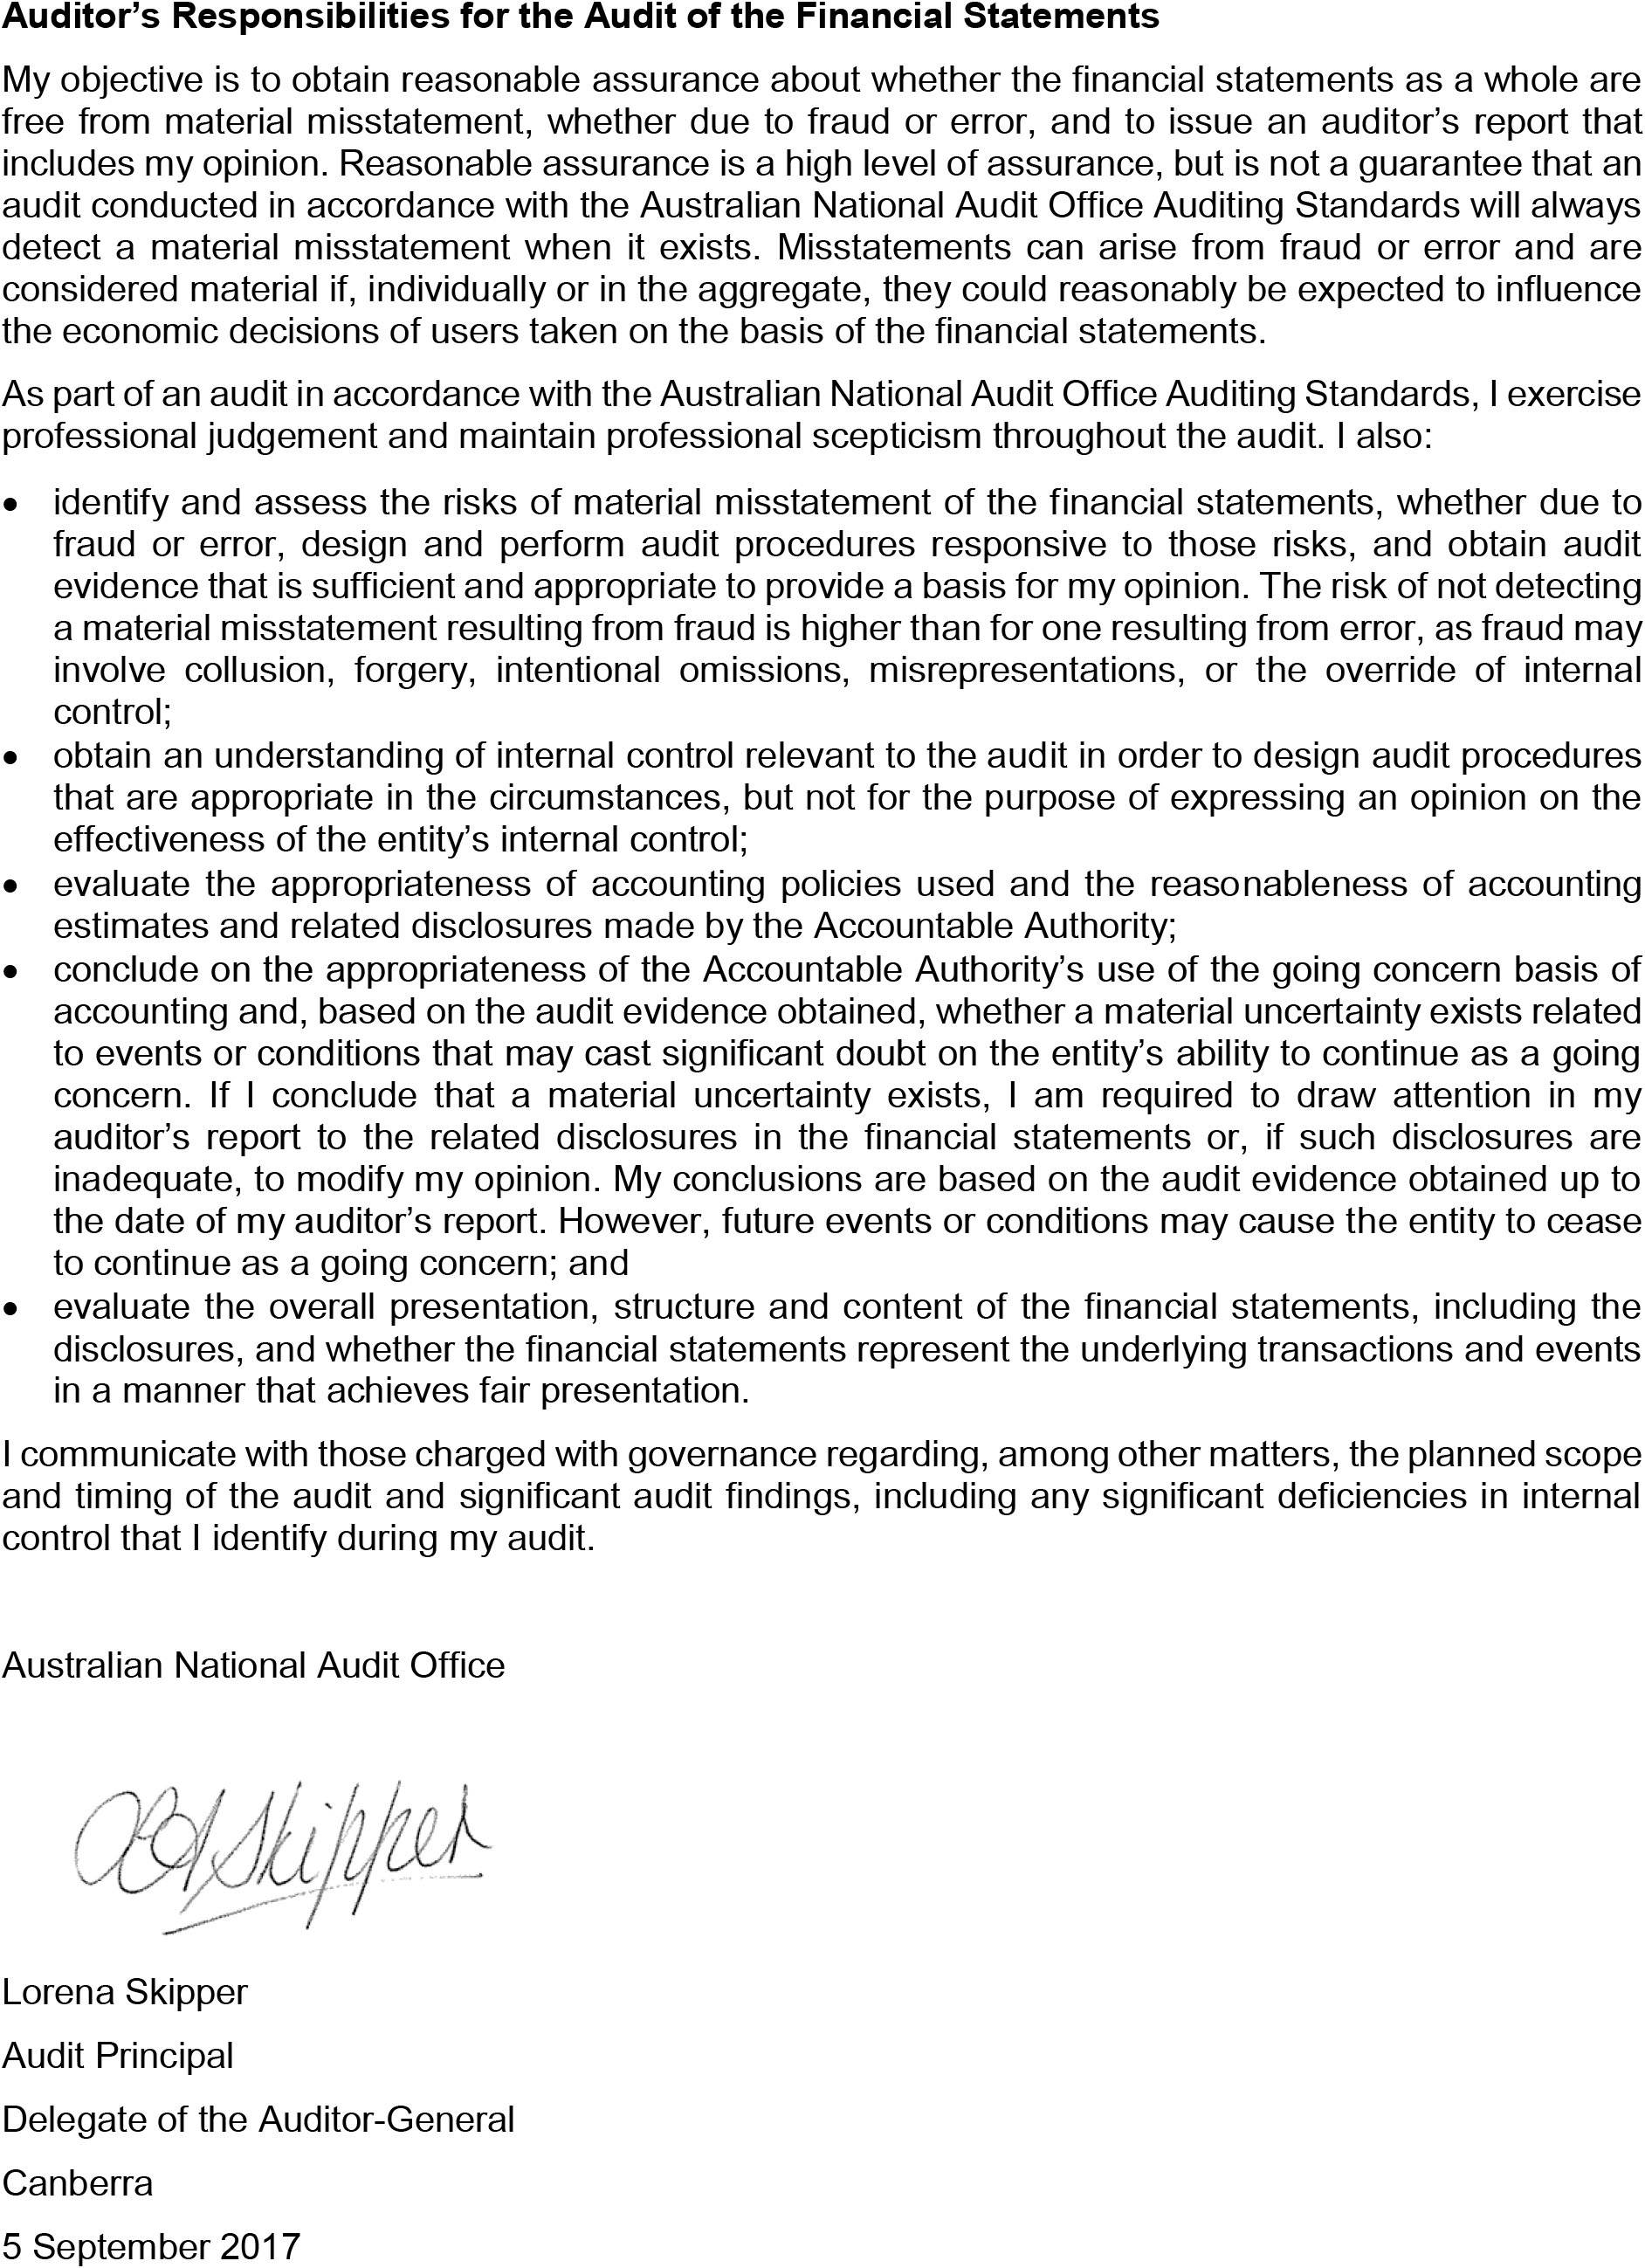 A photograph of the Independent Auditor's Report, page 2